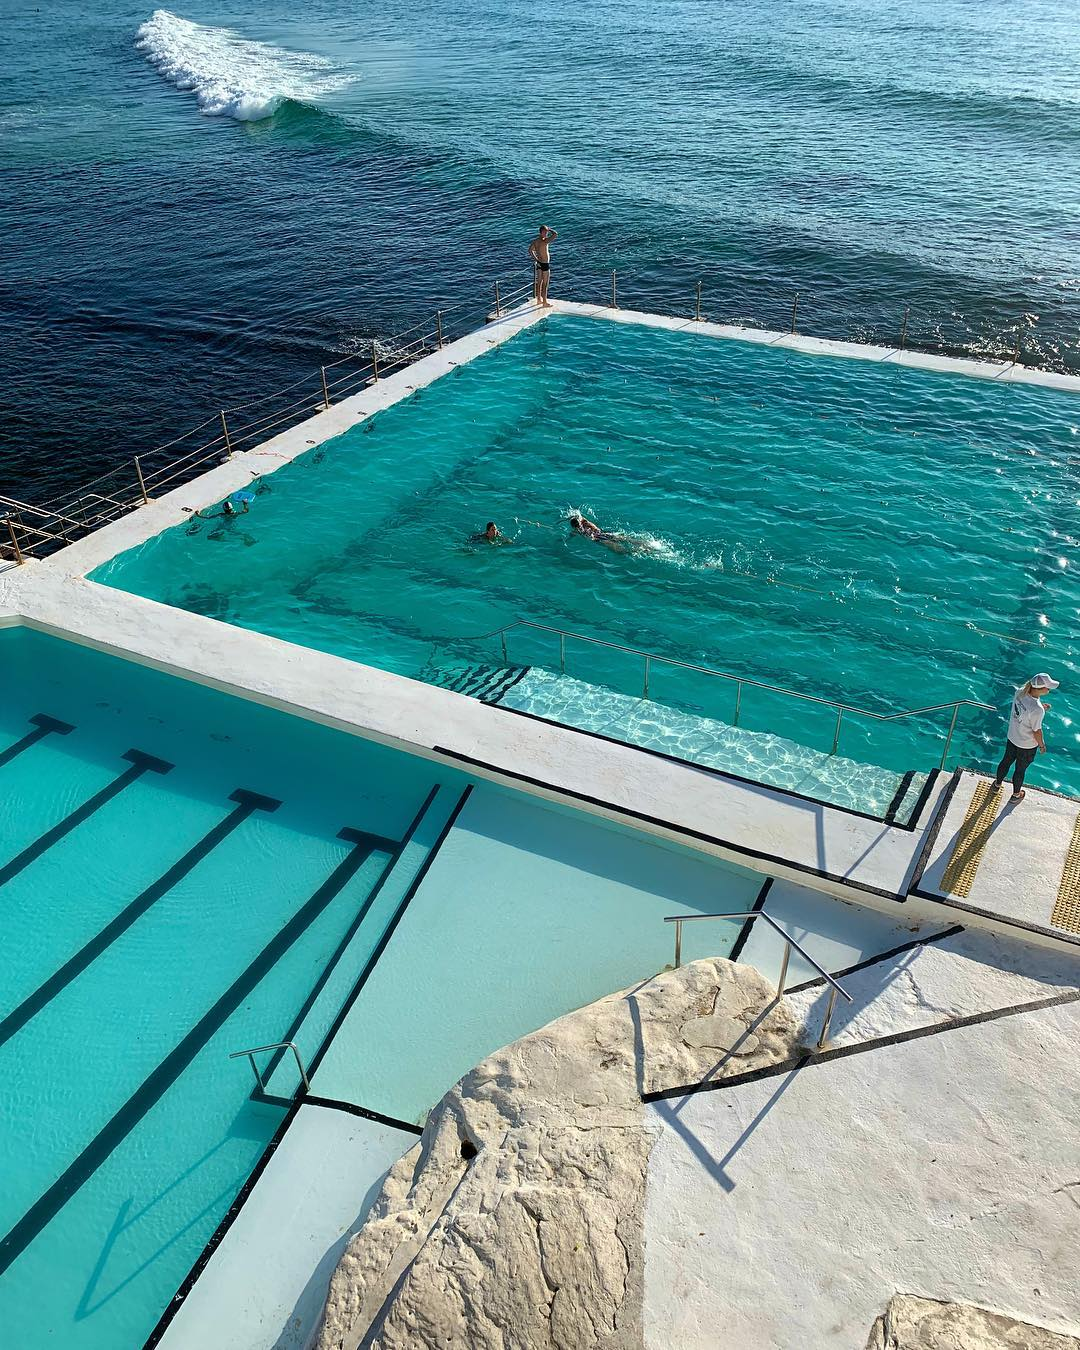 The saltwater pools at Bondi Icebergs